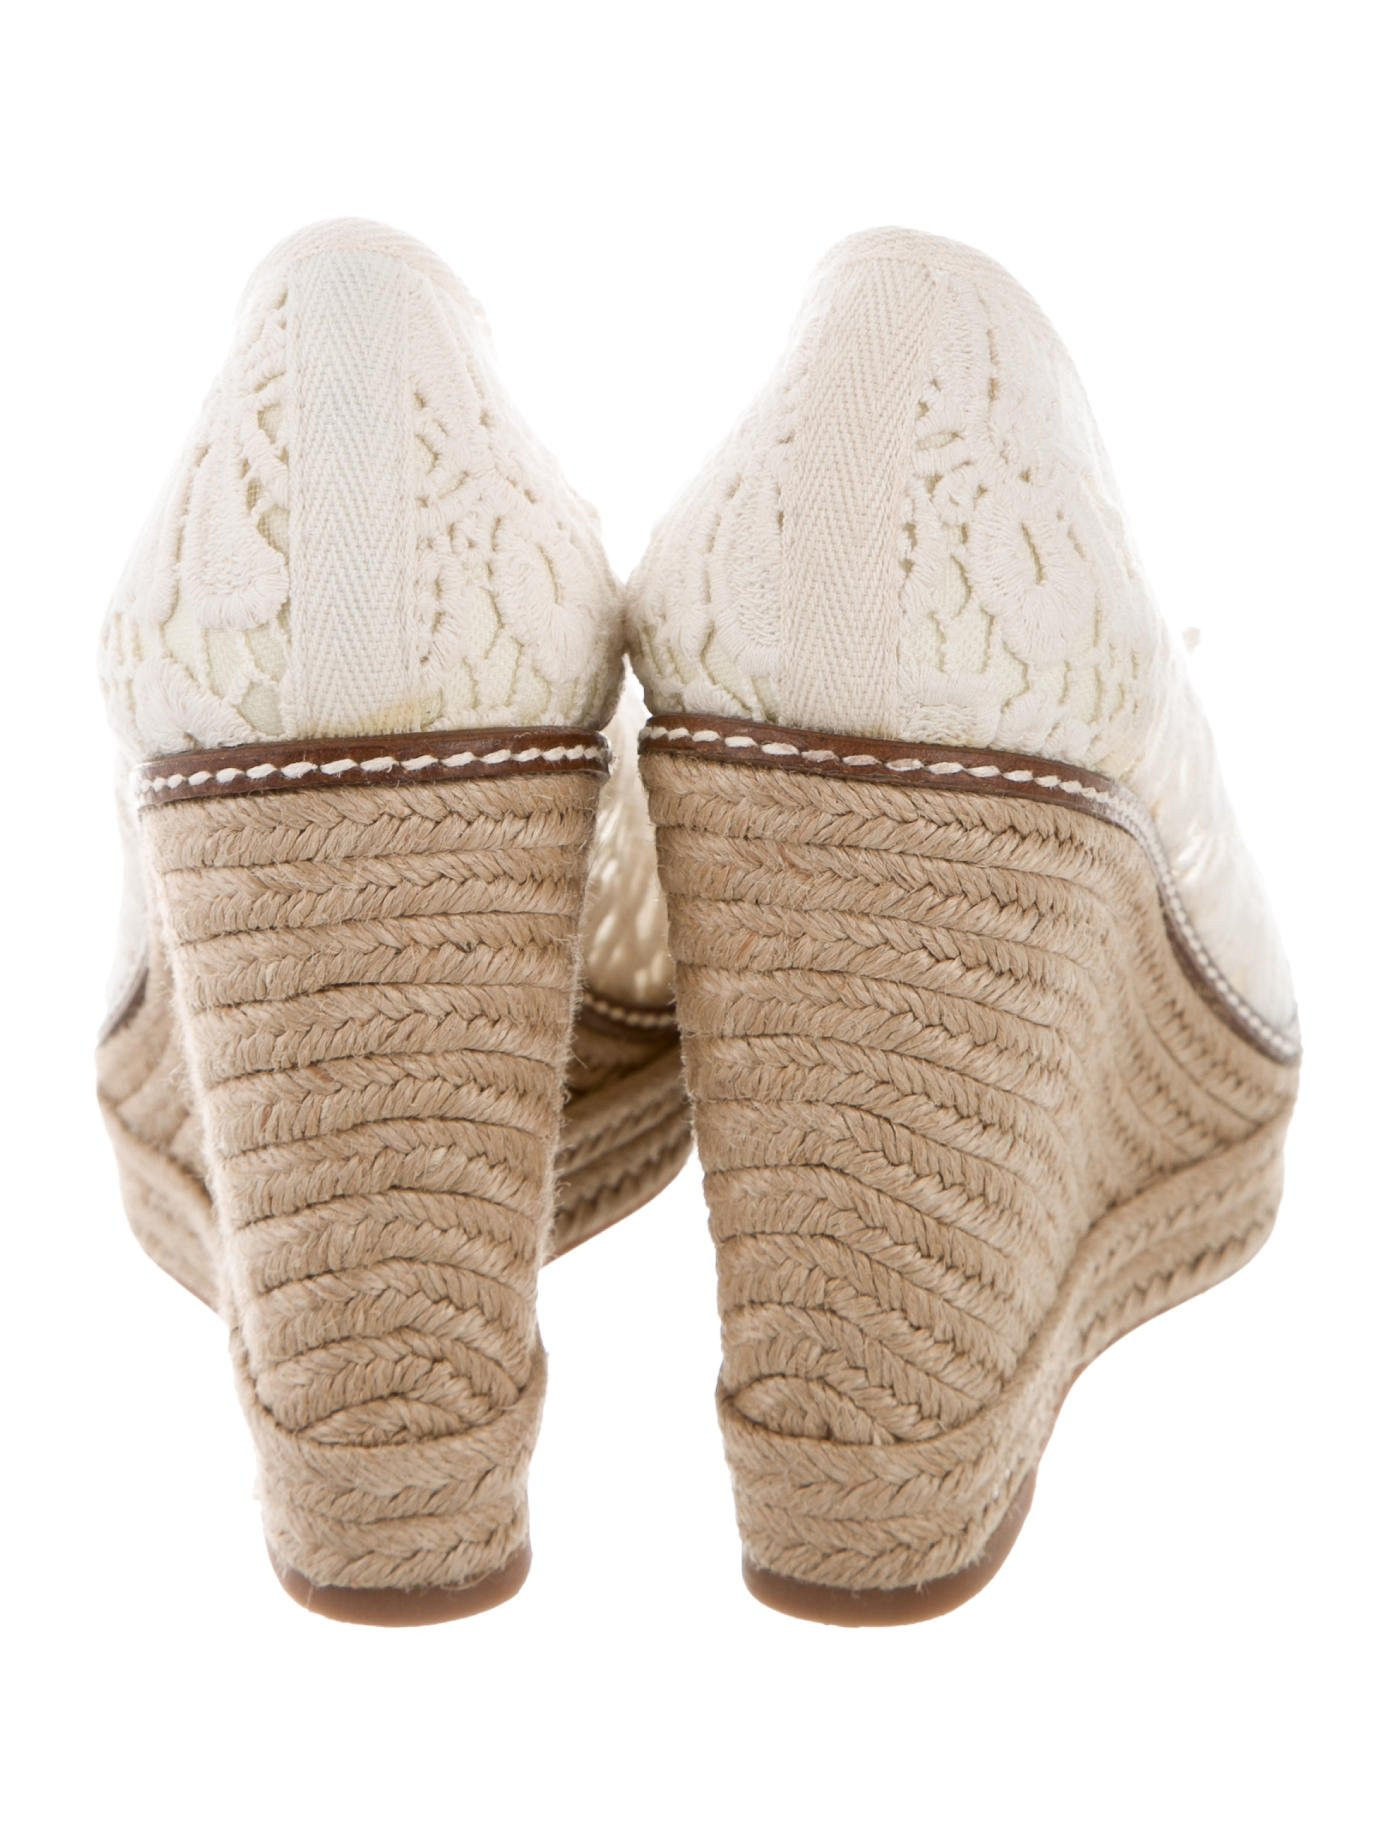 Awesome tory Burch Crocheted Espadrille Wedges Shoes Wto Crochet Espadrille Of Lovely 49 Images Crochet Espadrille